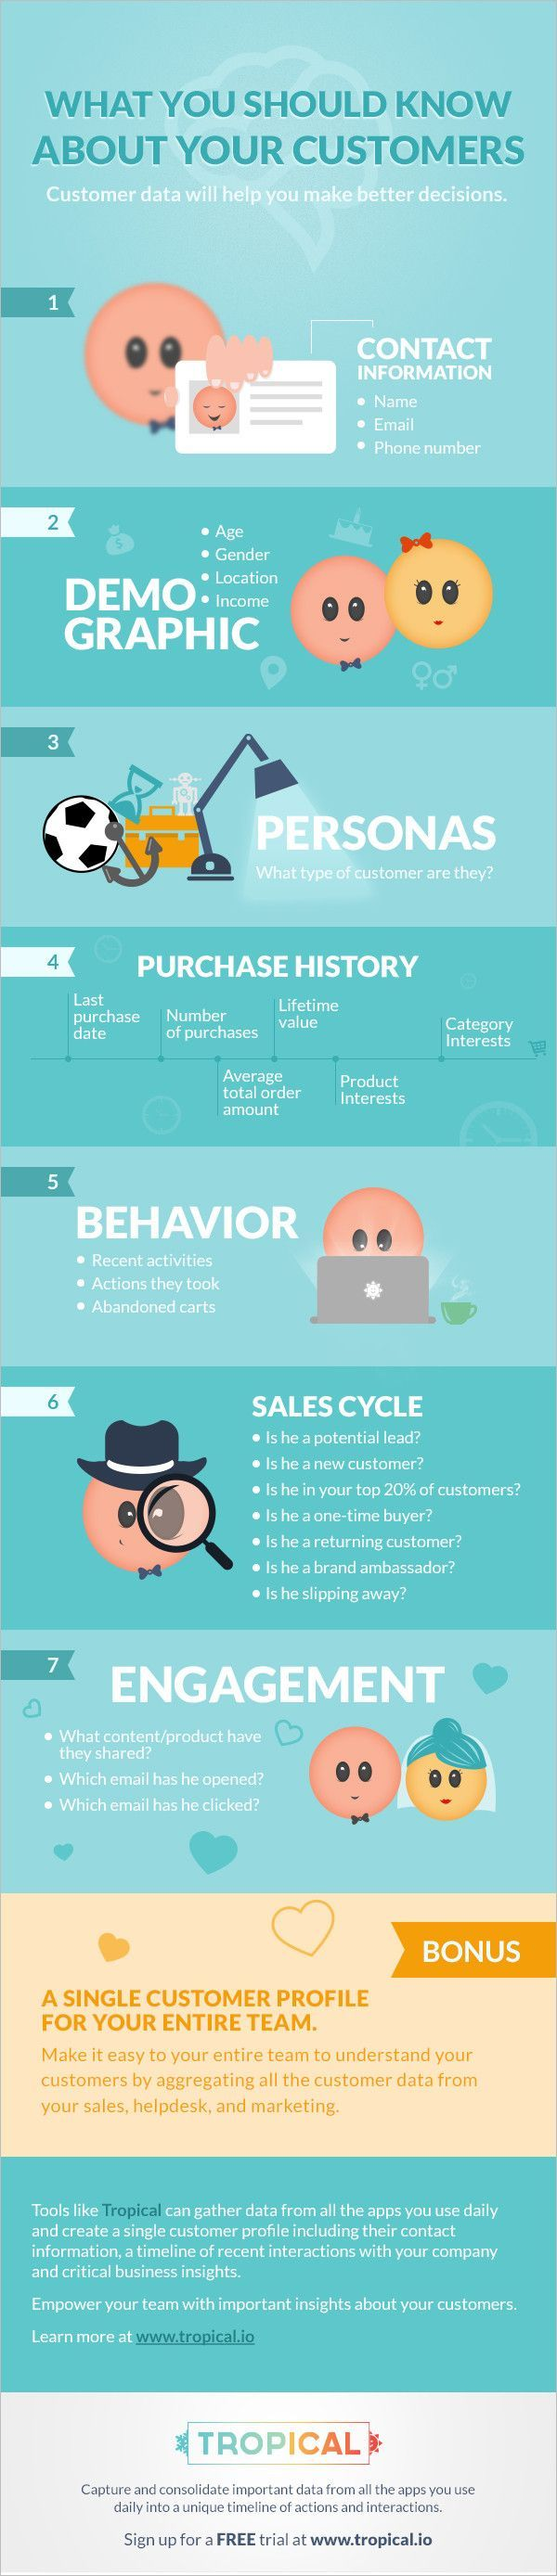 What You Should Know About Your Customers #infographic